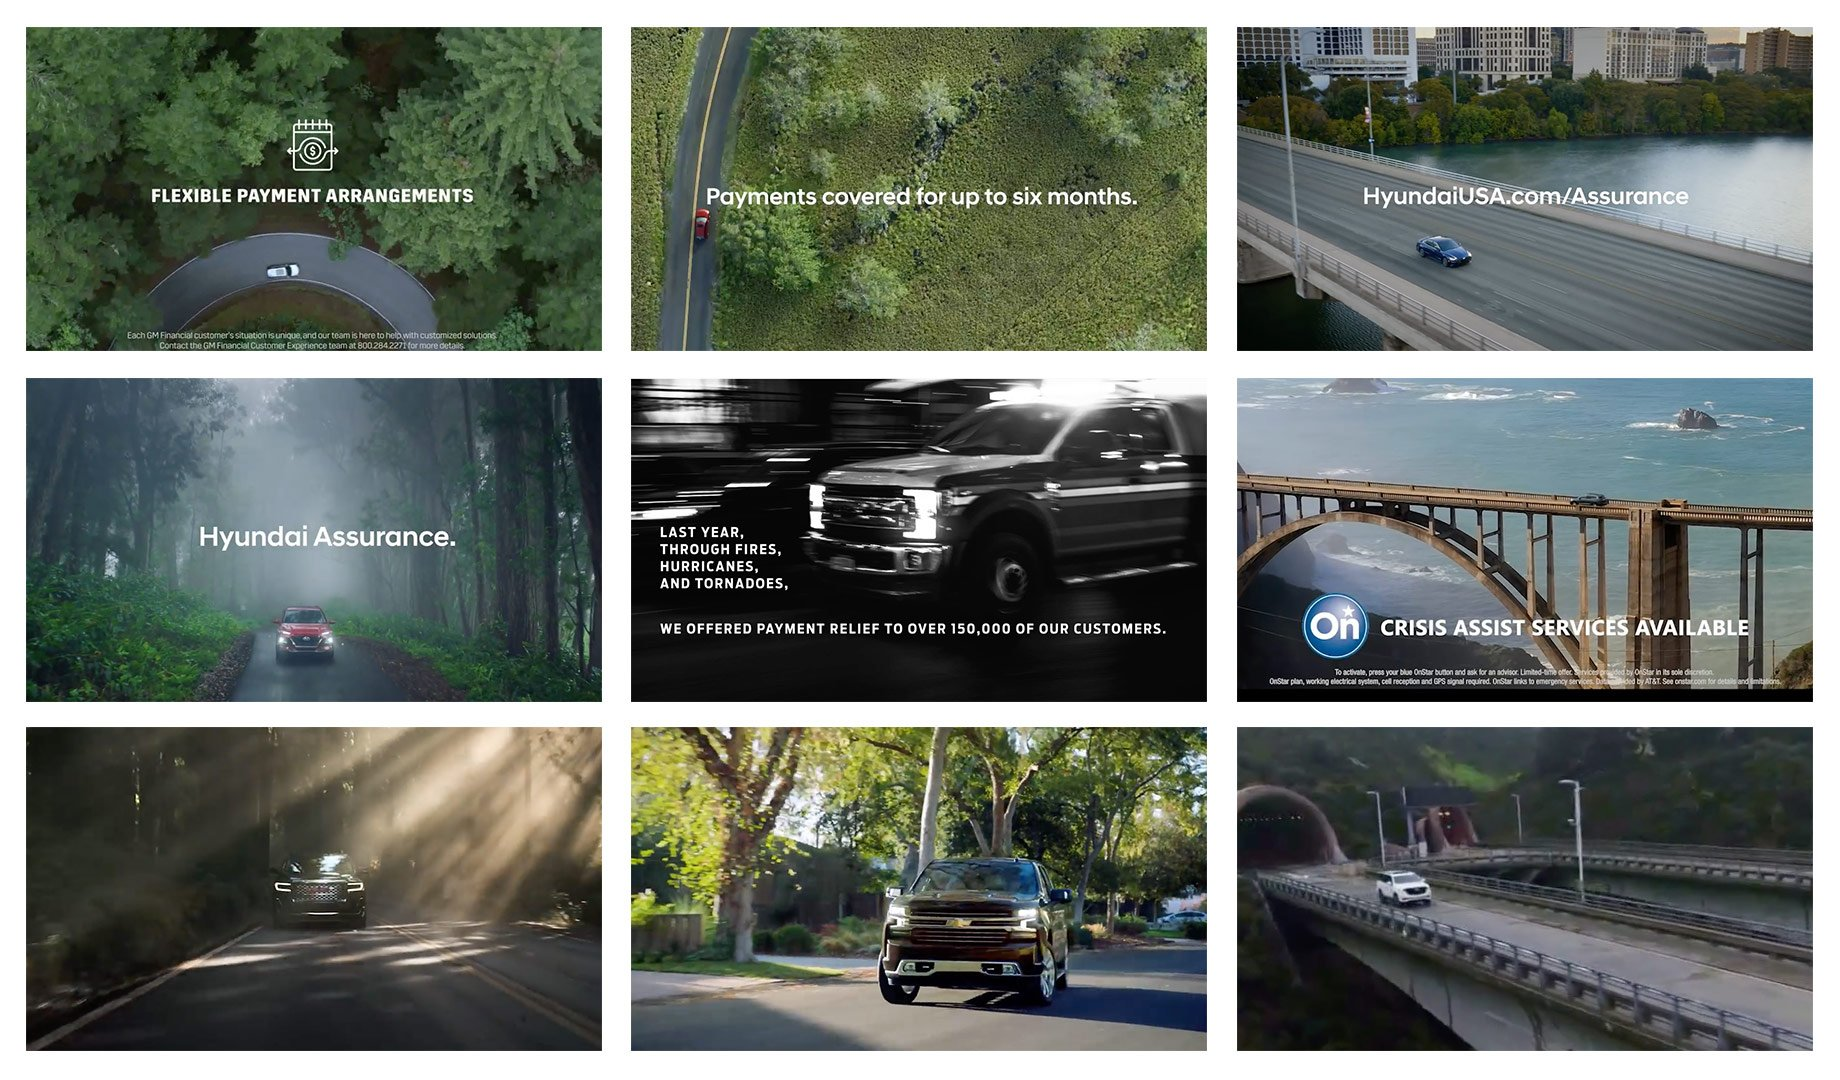 Ford stands out amongst similar auto ads